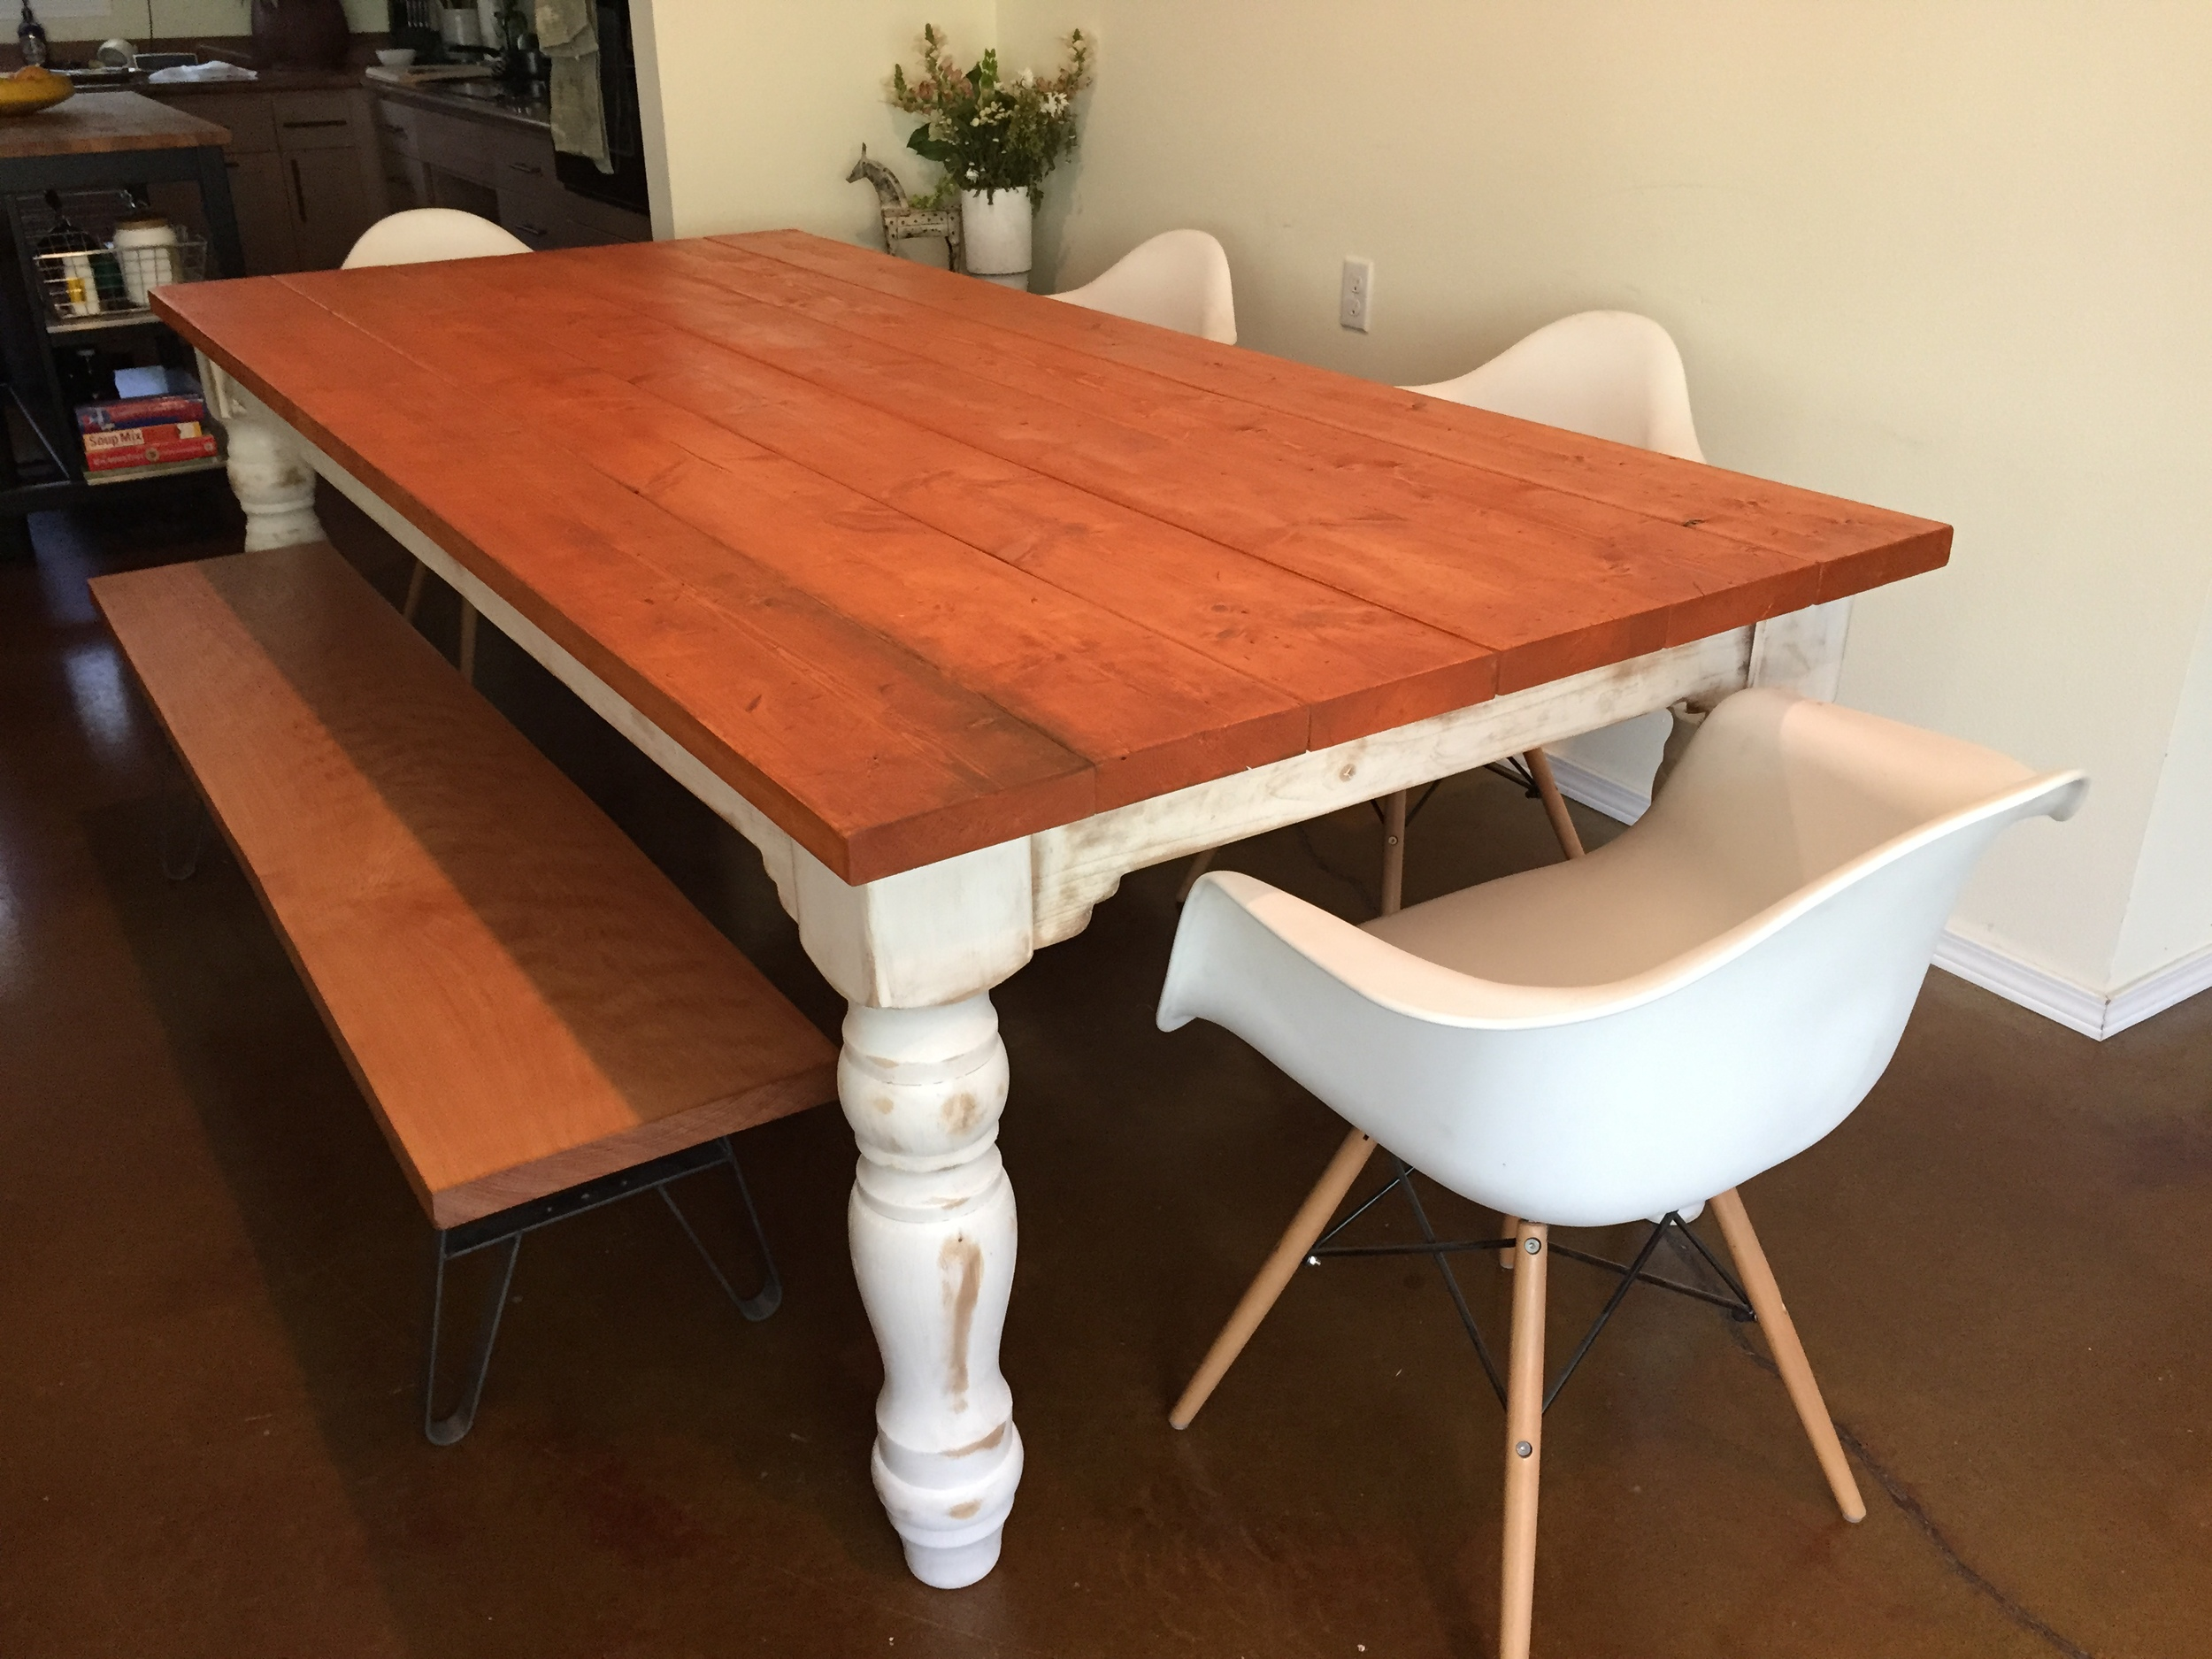 8 Foot Farmhouse Table with Industrial, Beech Bench